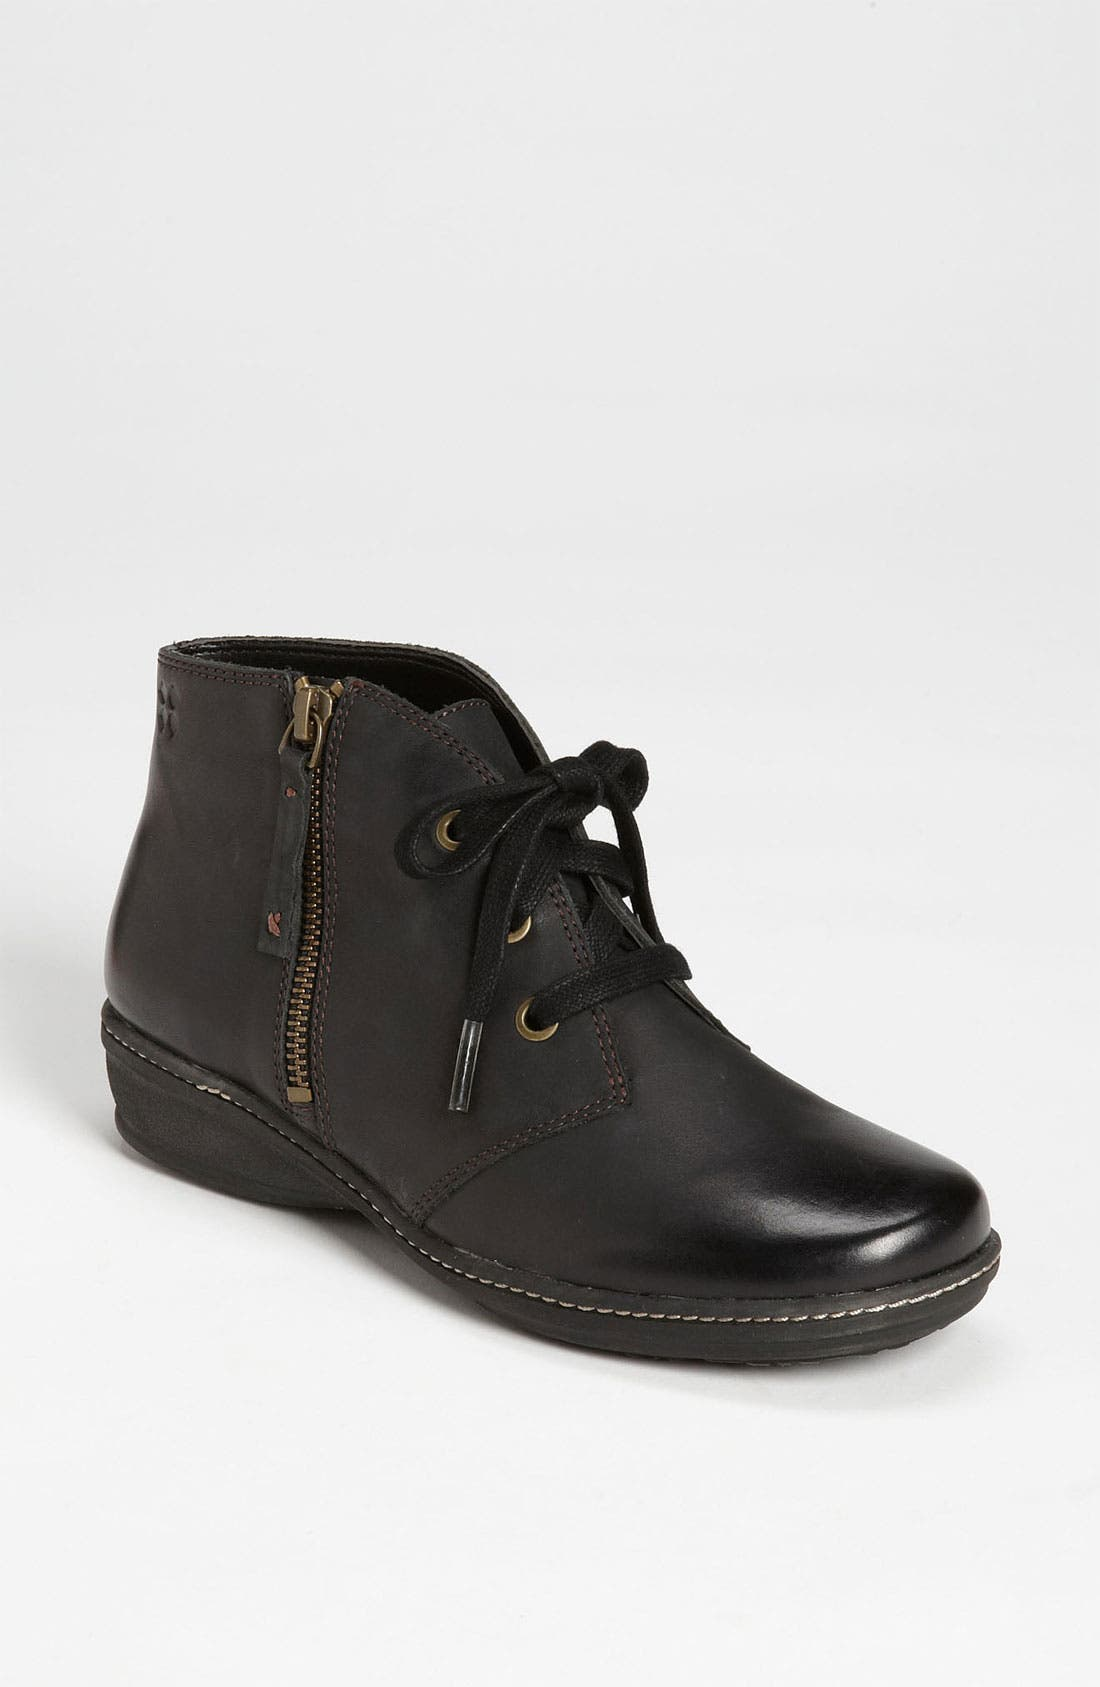 Alternate Image 1 Selected - Naturalizer 'Medley' Boot